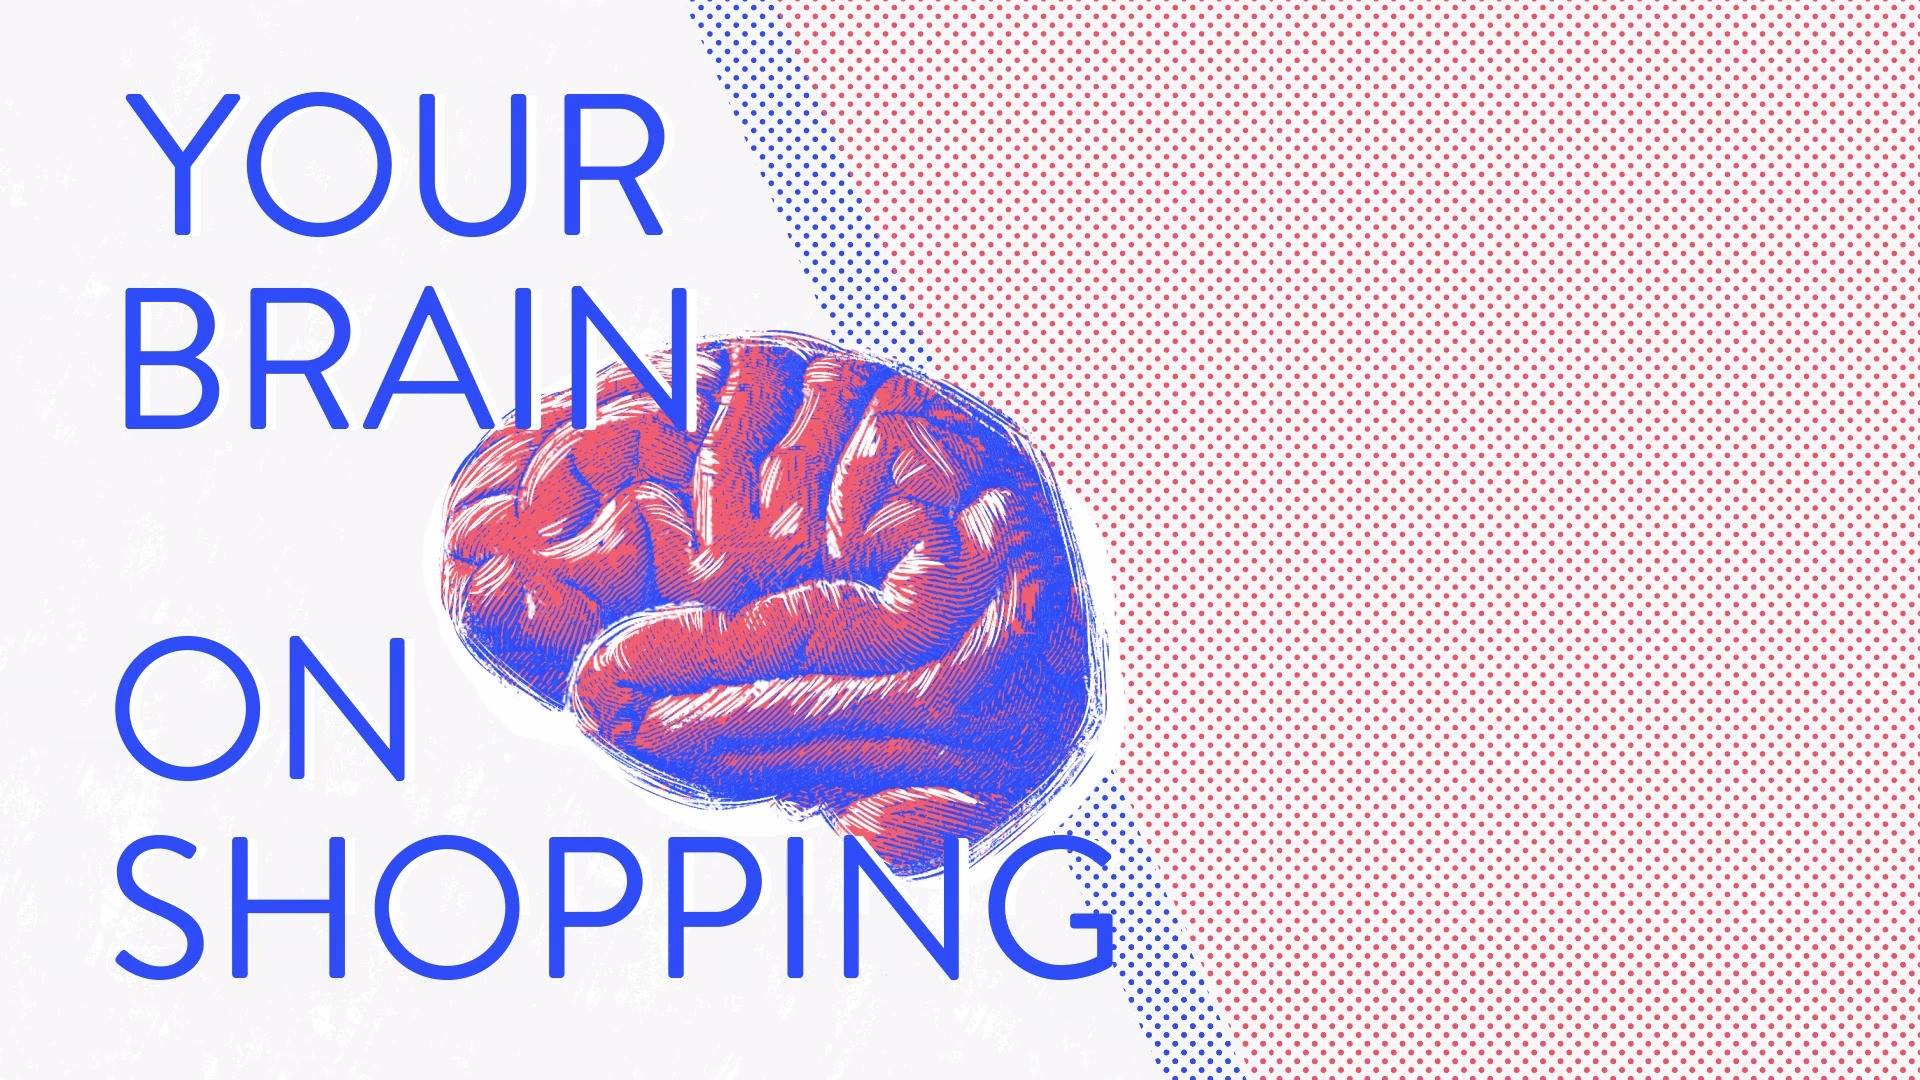 Your Brain on Shopping